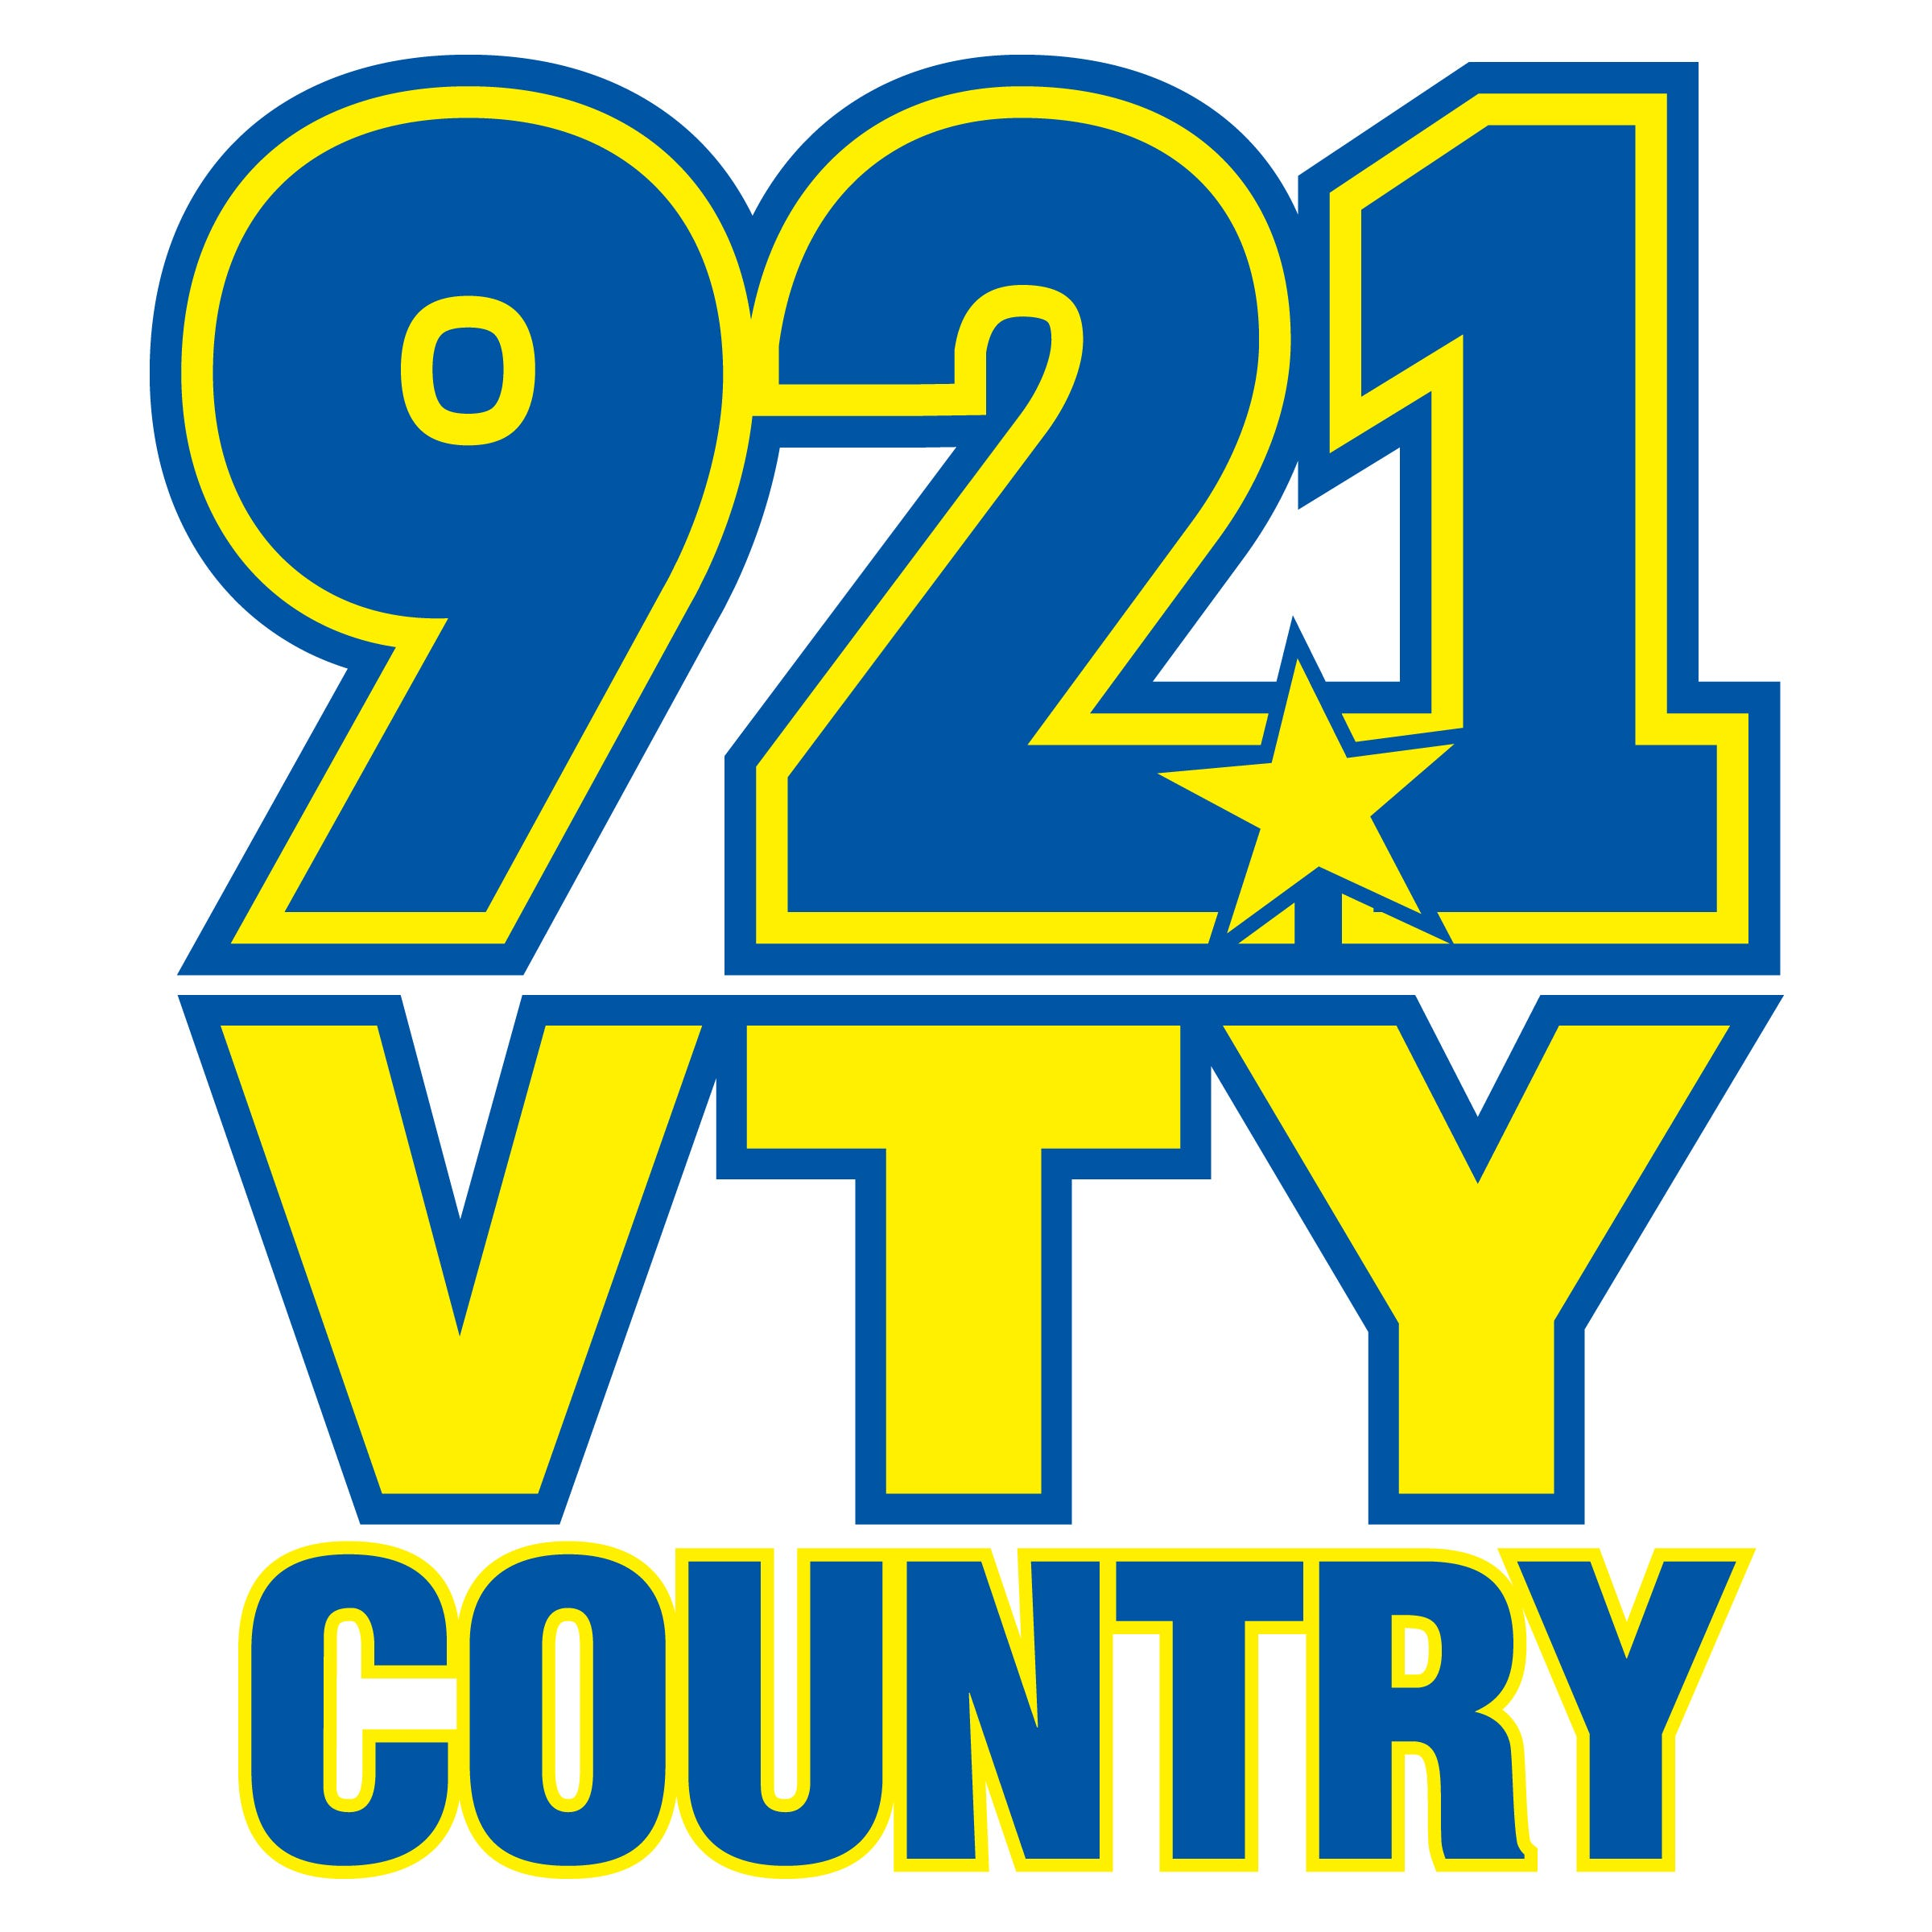 WVTY-FM in Racine is going back to country music.